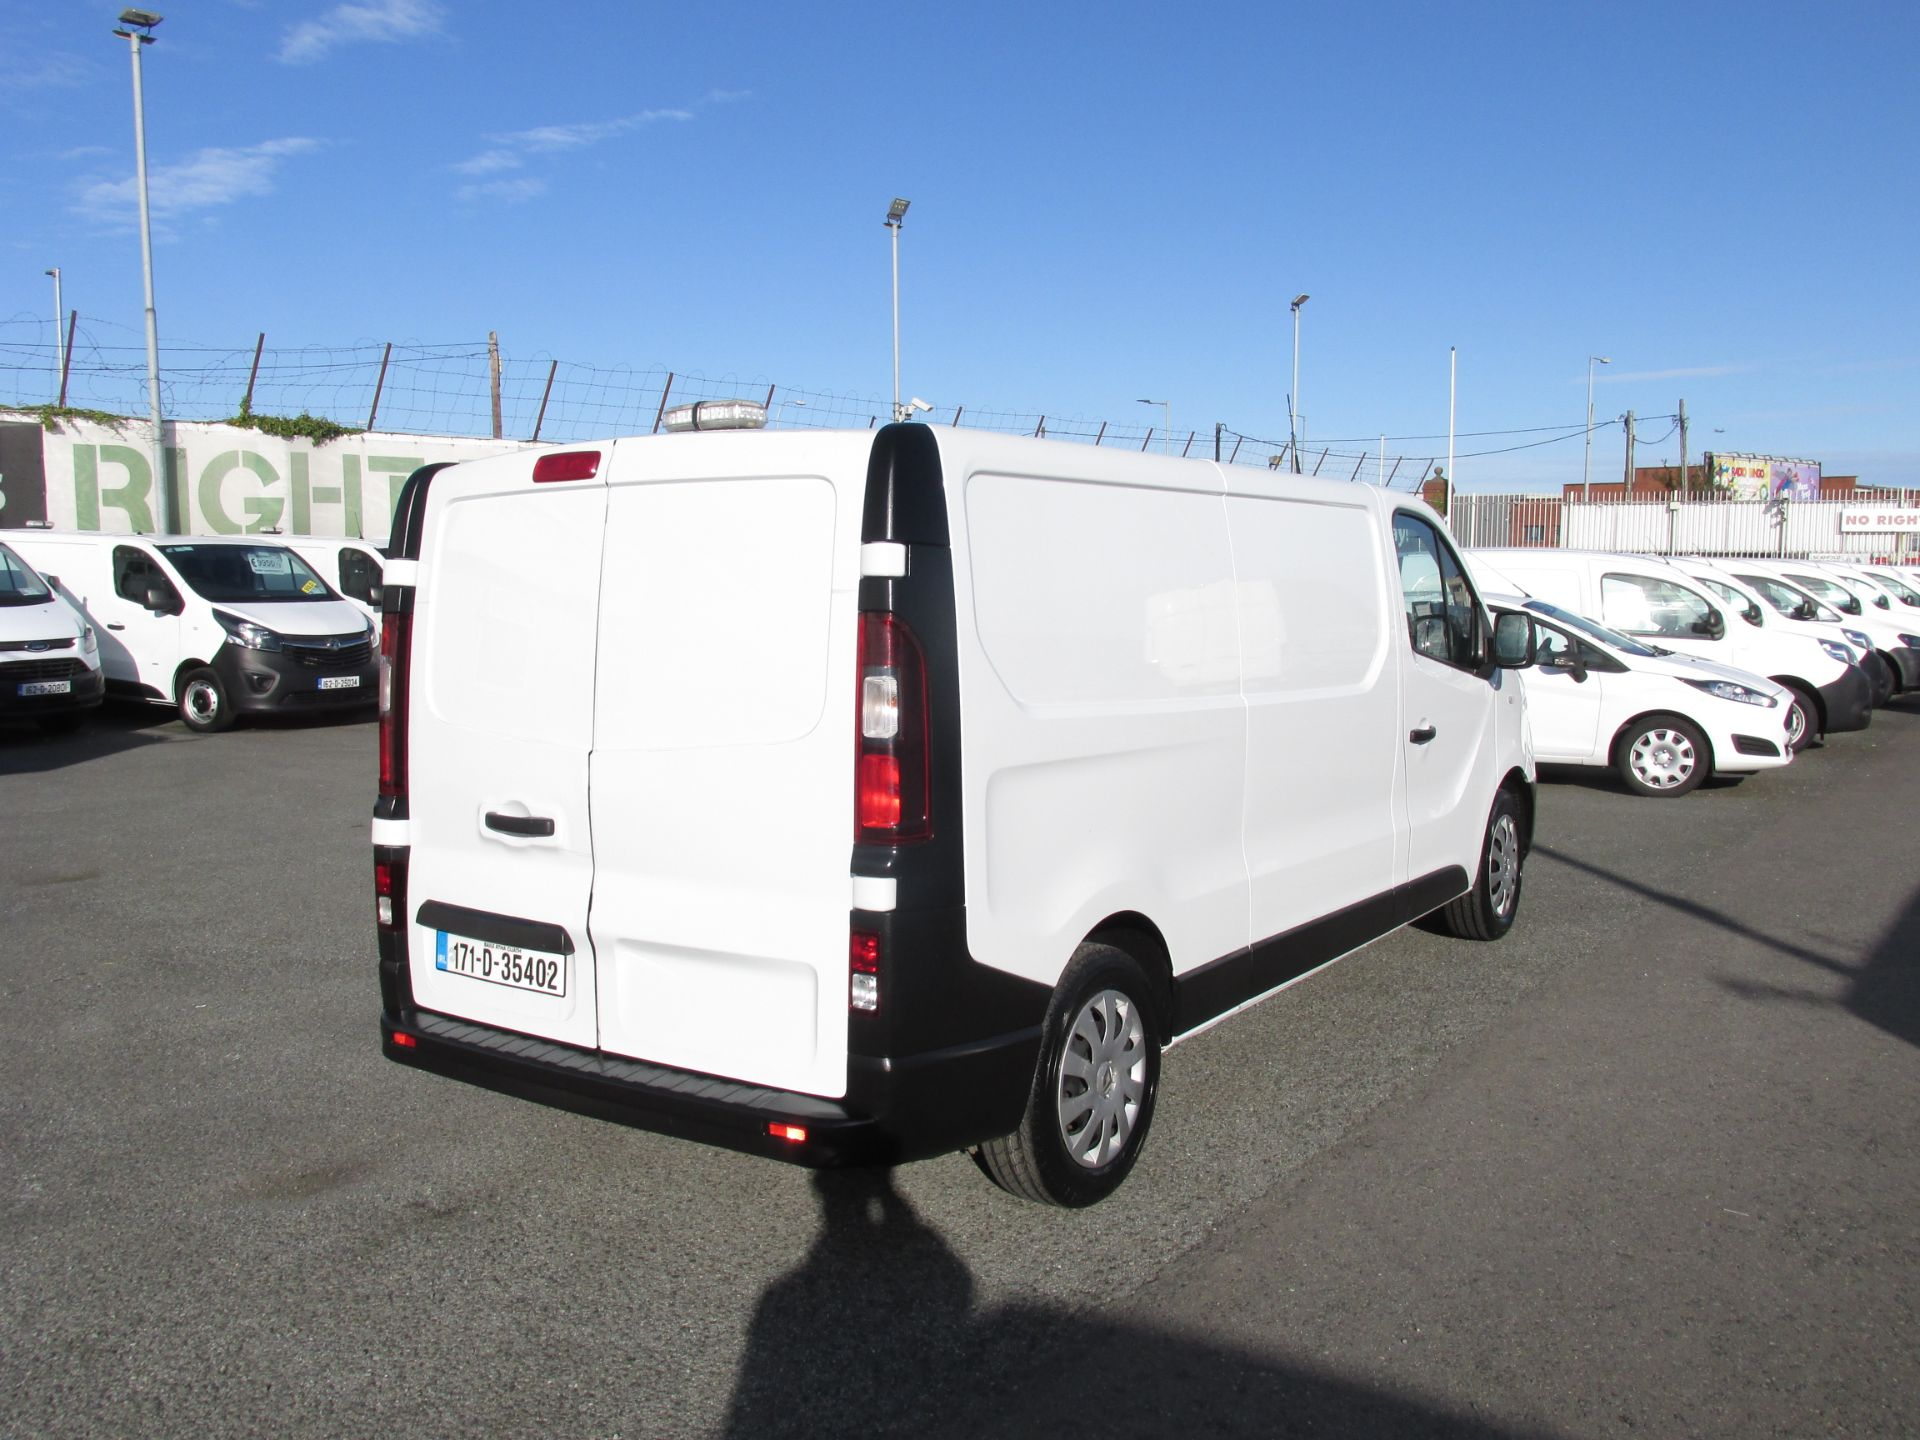 2017 Renault Trafic LL29 DCI 120 Business 3DR (171D35402) Image 7